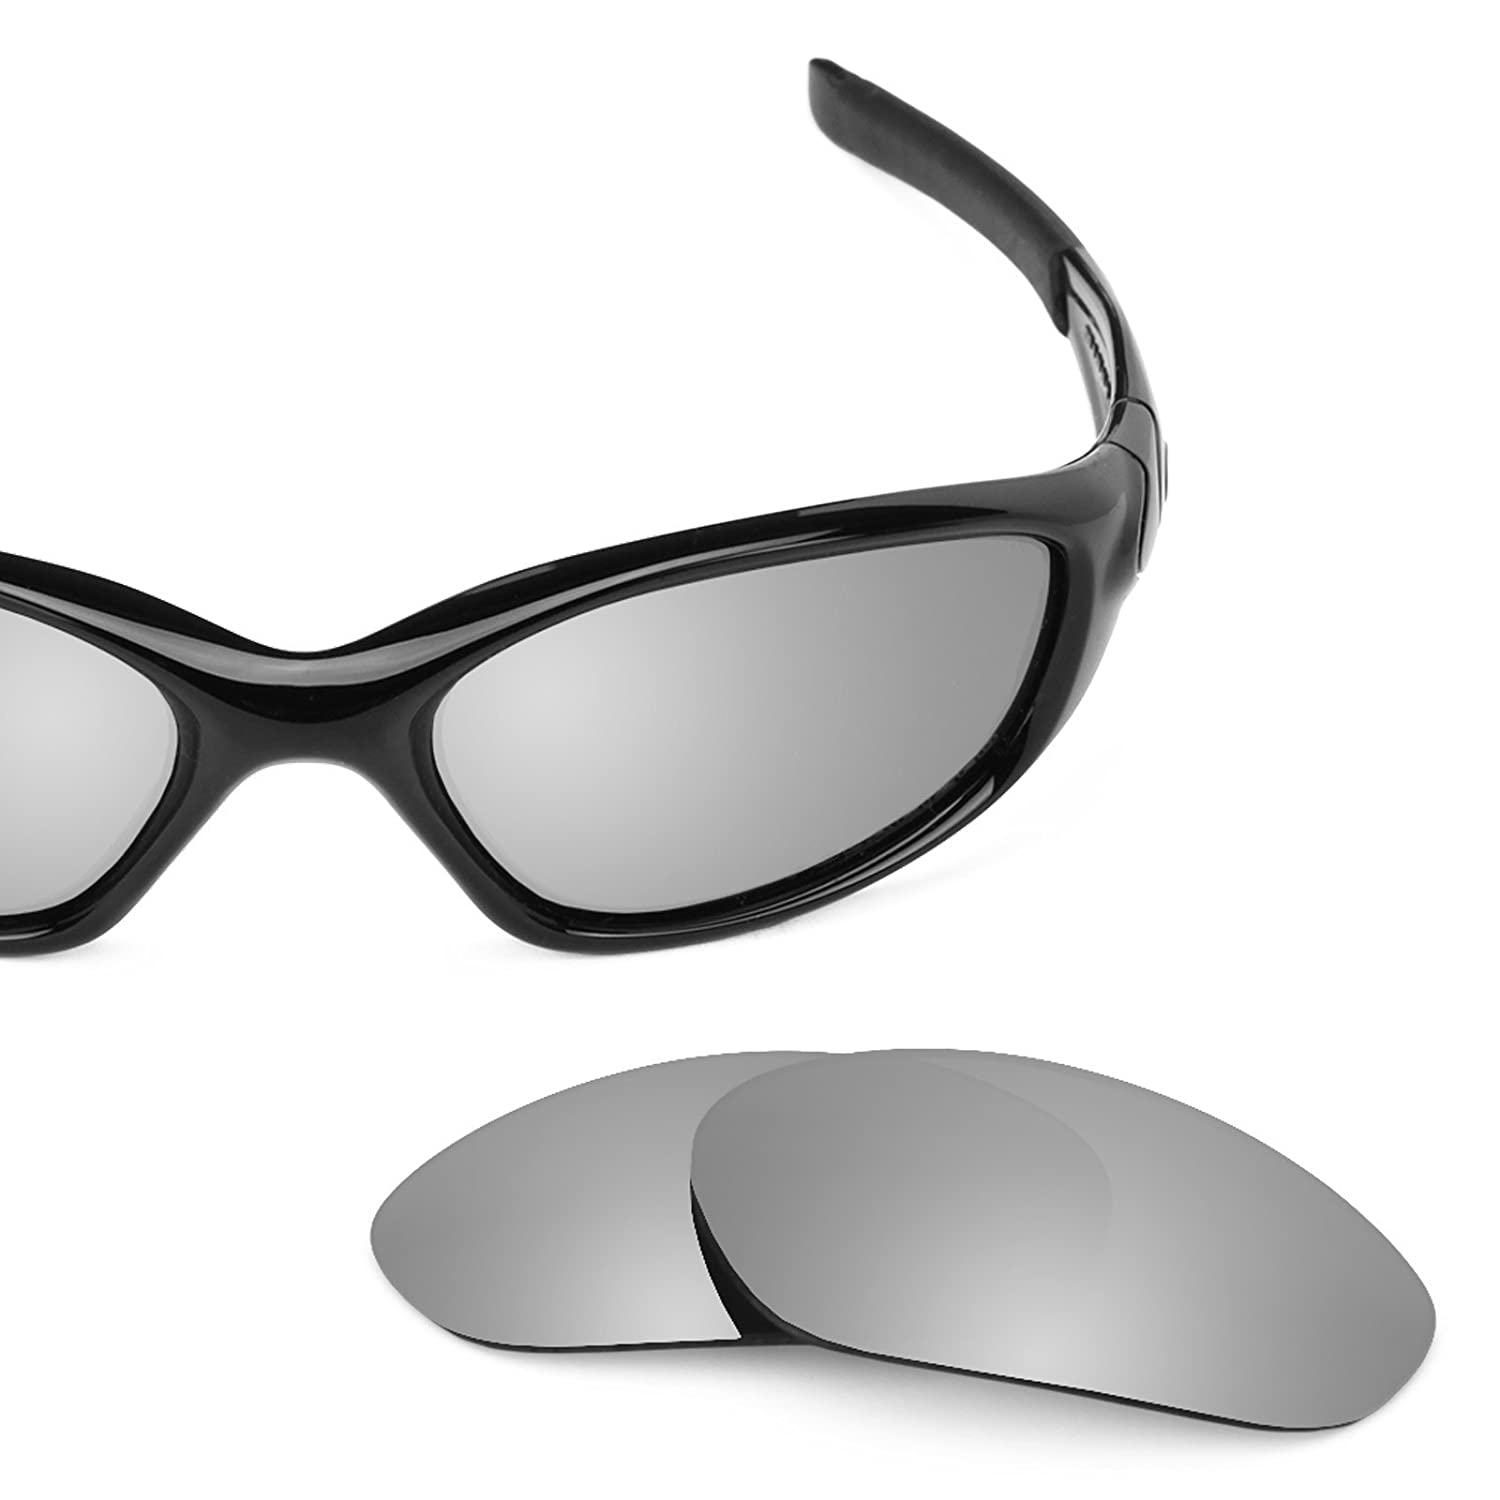 1c6346abb6 Revant Replacement Lenses for Oakley Minute 2.0 2 Pair Combo Pack K004 at Amazon  Men s Clothing store